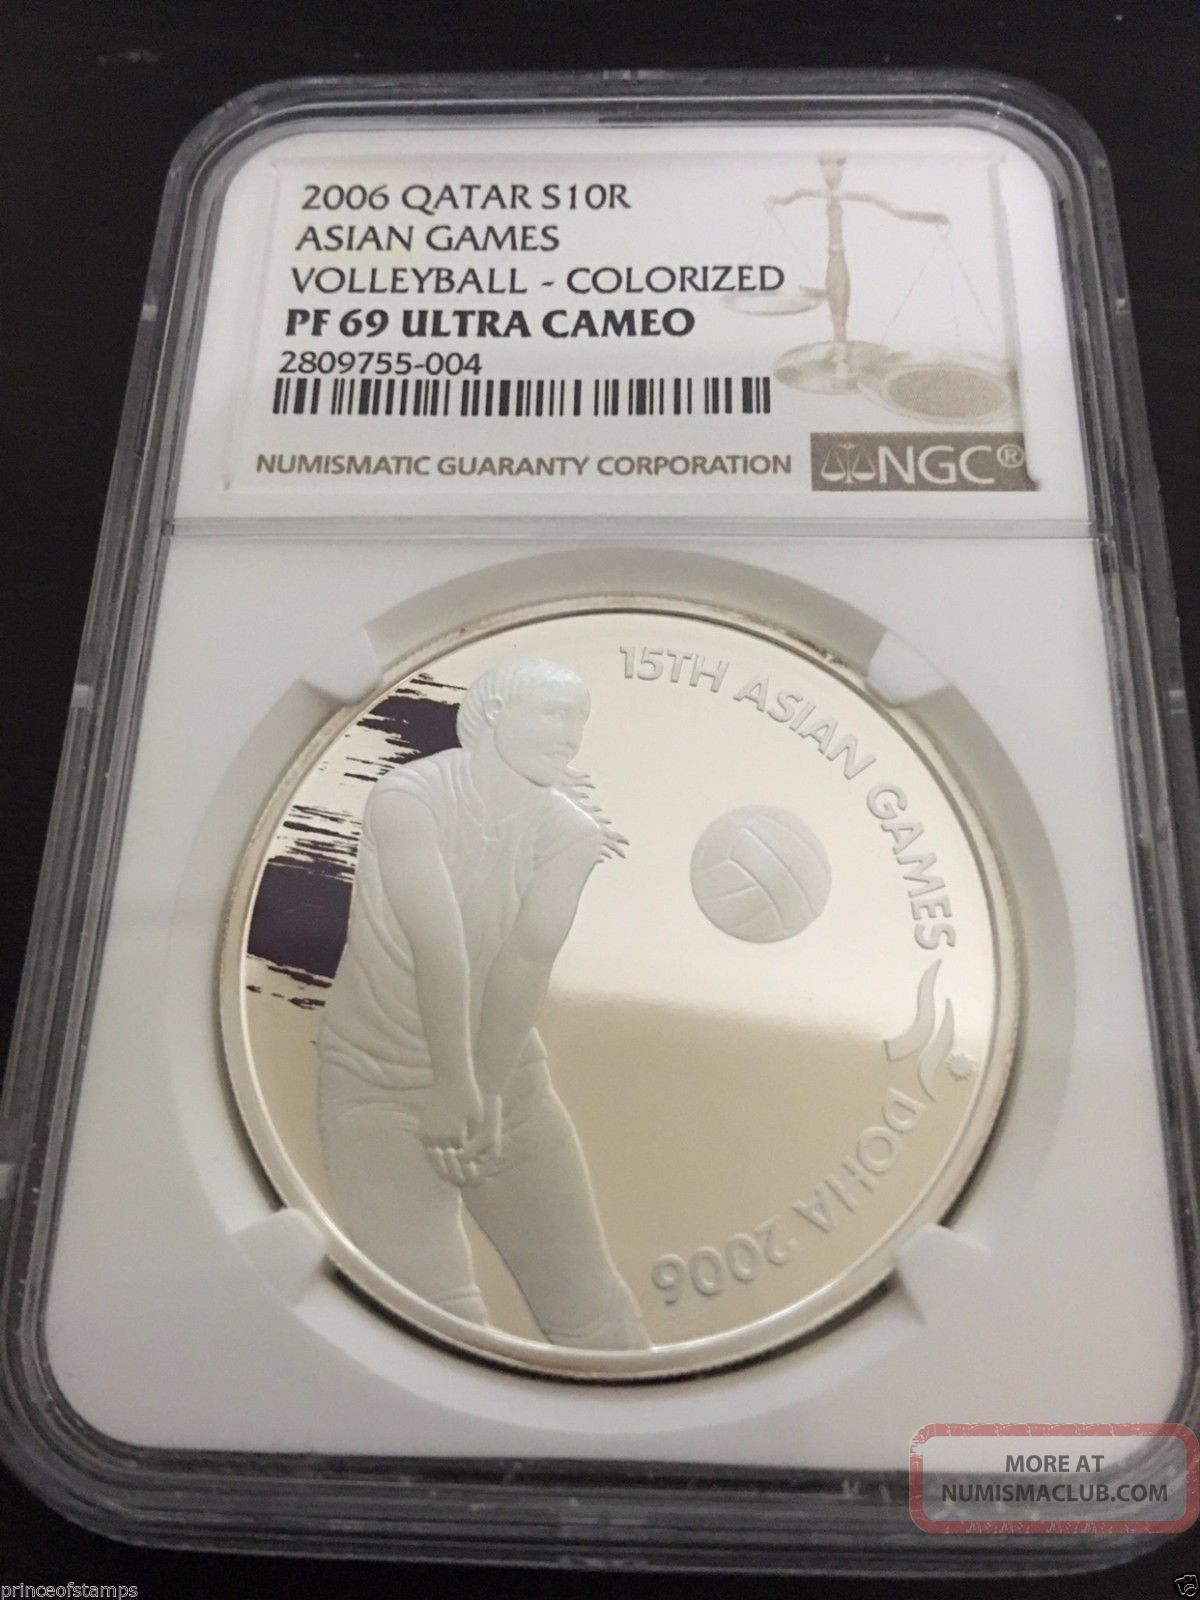 Qatar 2006 Ngc Pf 69 Ultra Cameo 10 Riyal Silver Coin Asian Games Volleyball Middle East photo